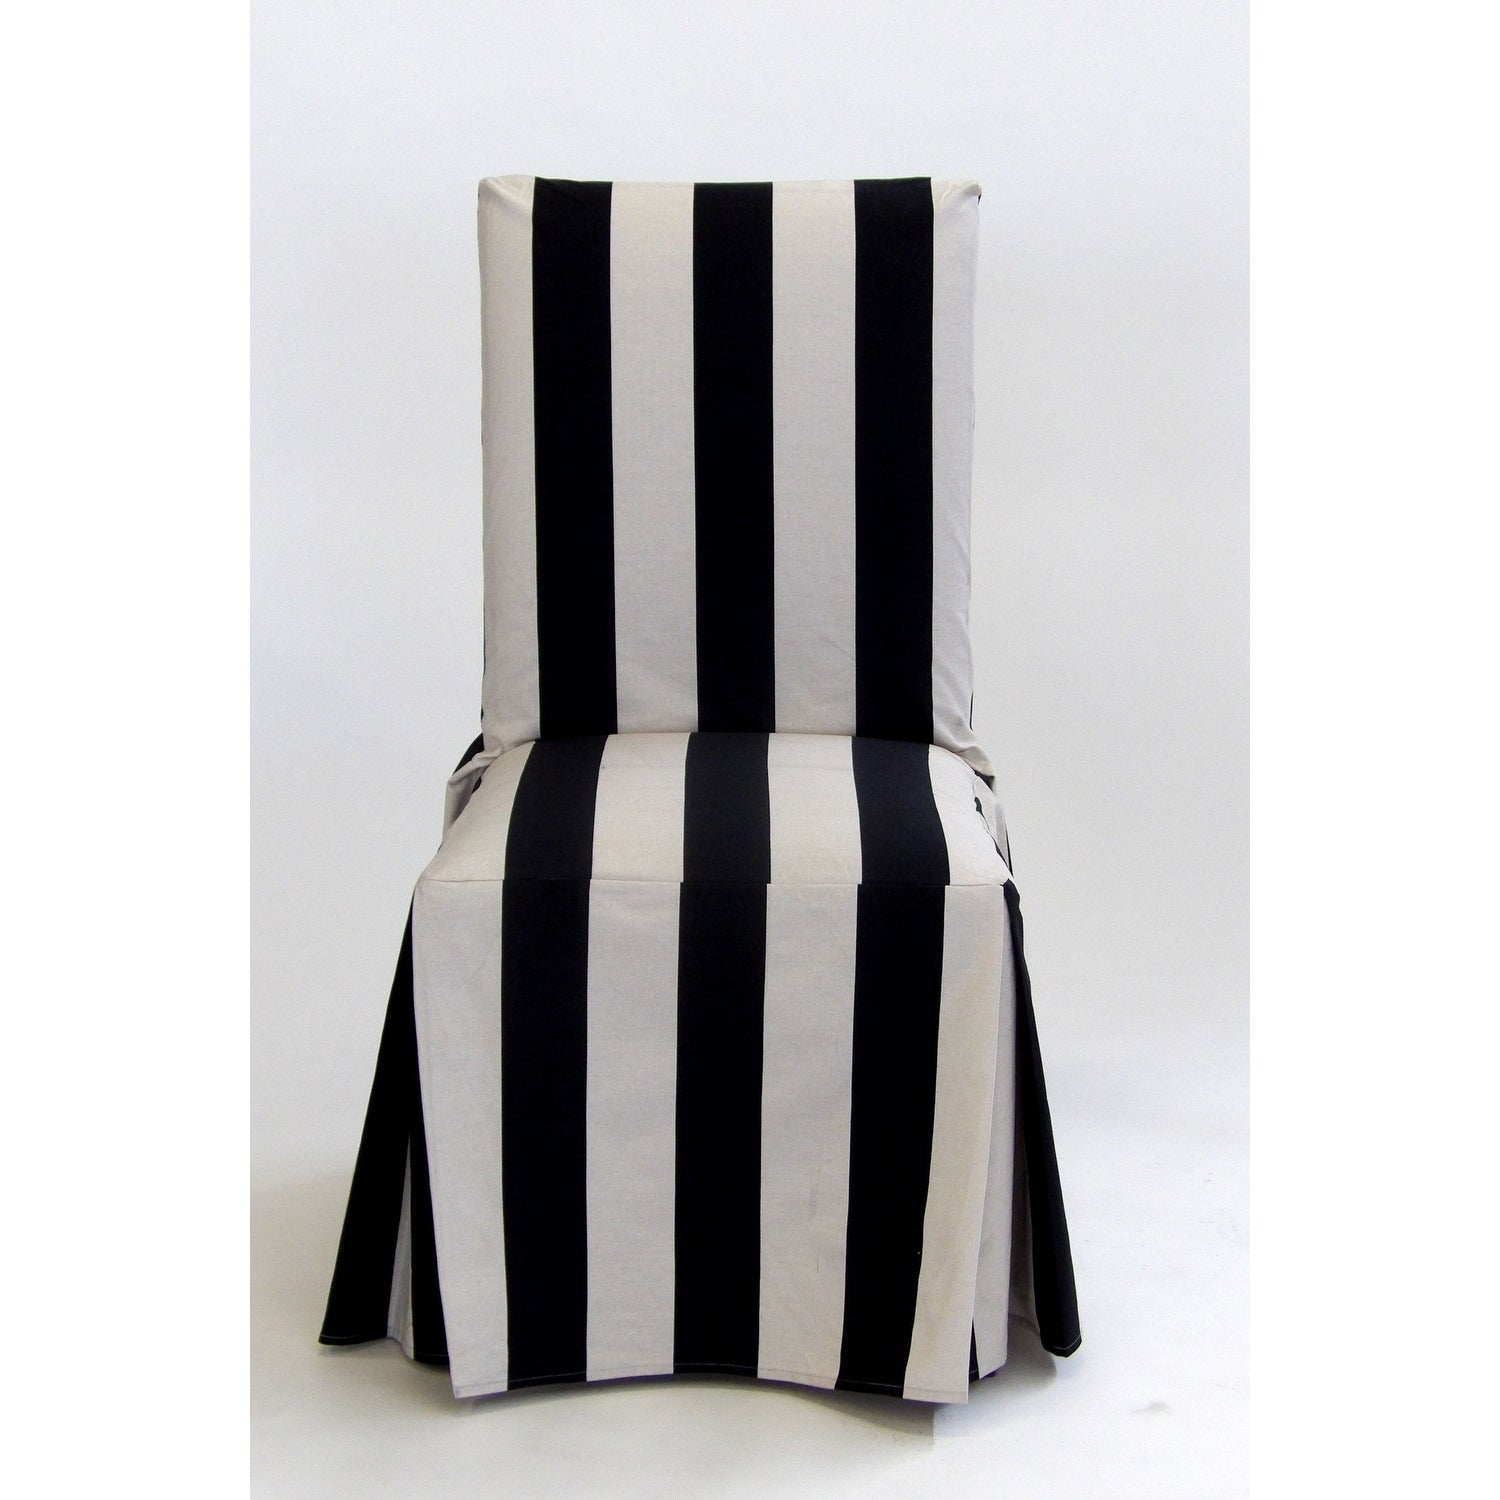 Shop Classic Slipcovers Cabana Stripe Long Dining Chair Covers Set